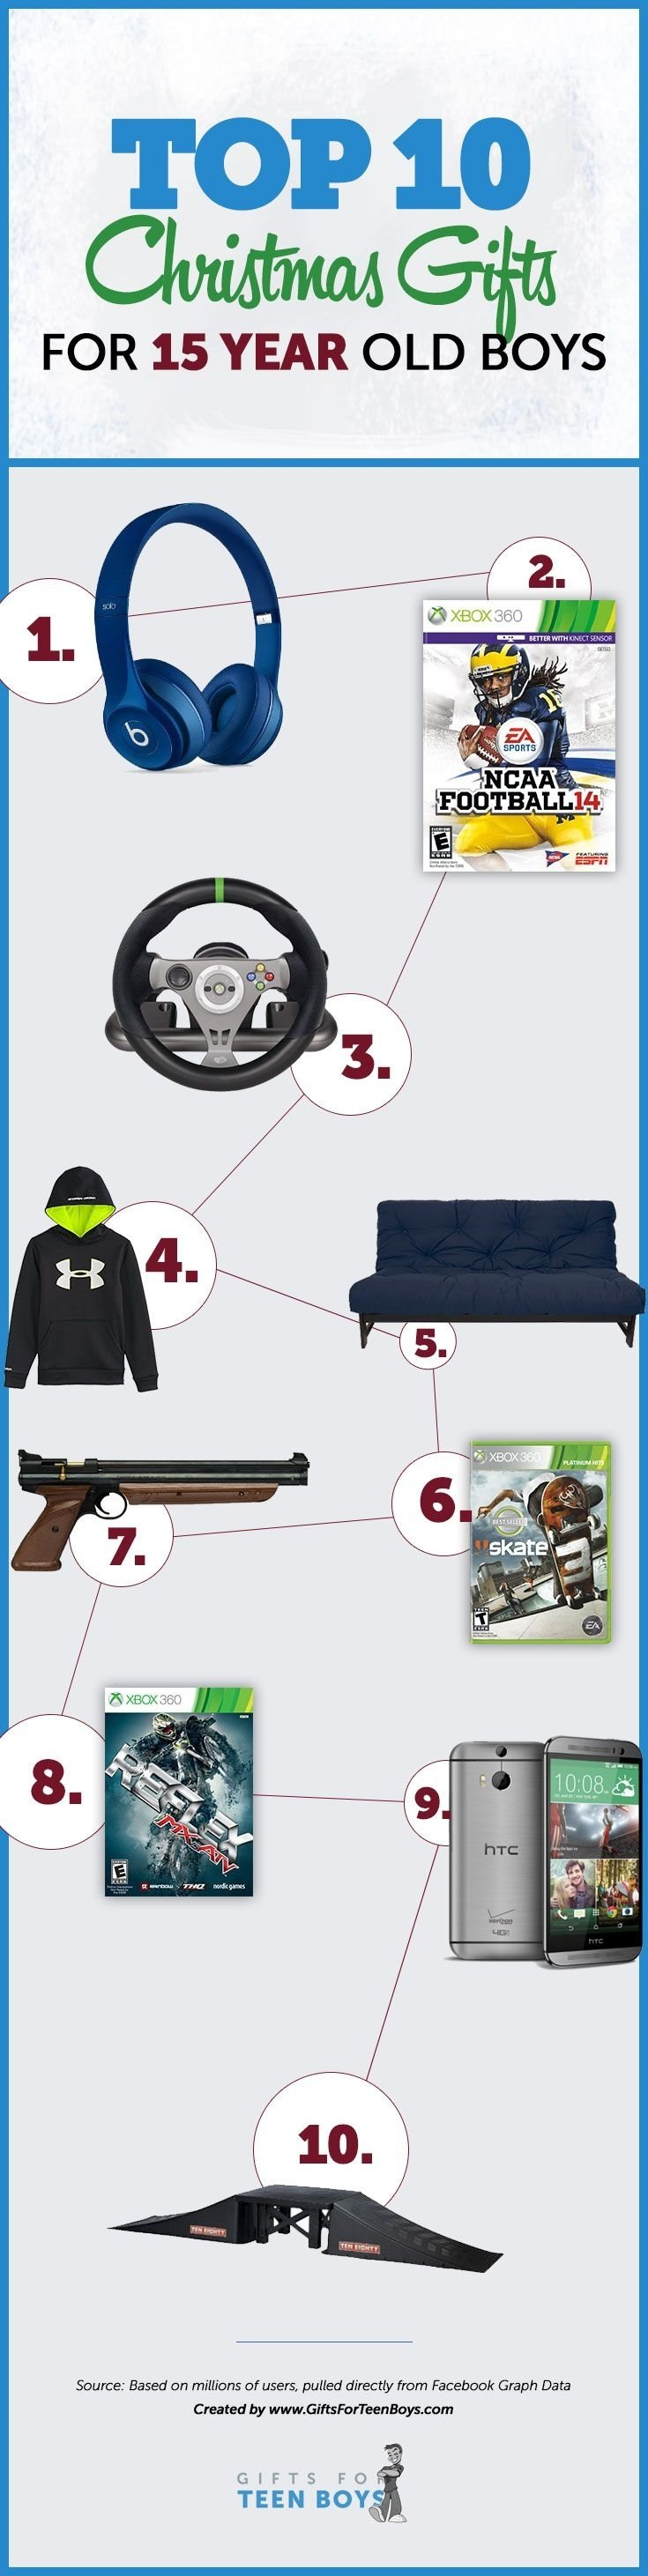 10 Nice Gift Ideas For 15 Year Old Boys 100 best best gifts for teen boys images on pinterest christmas 7